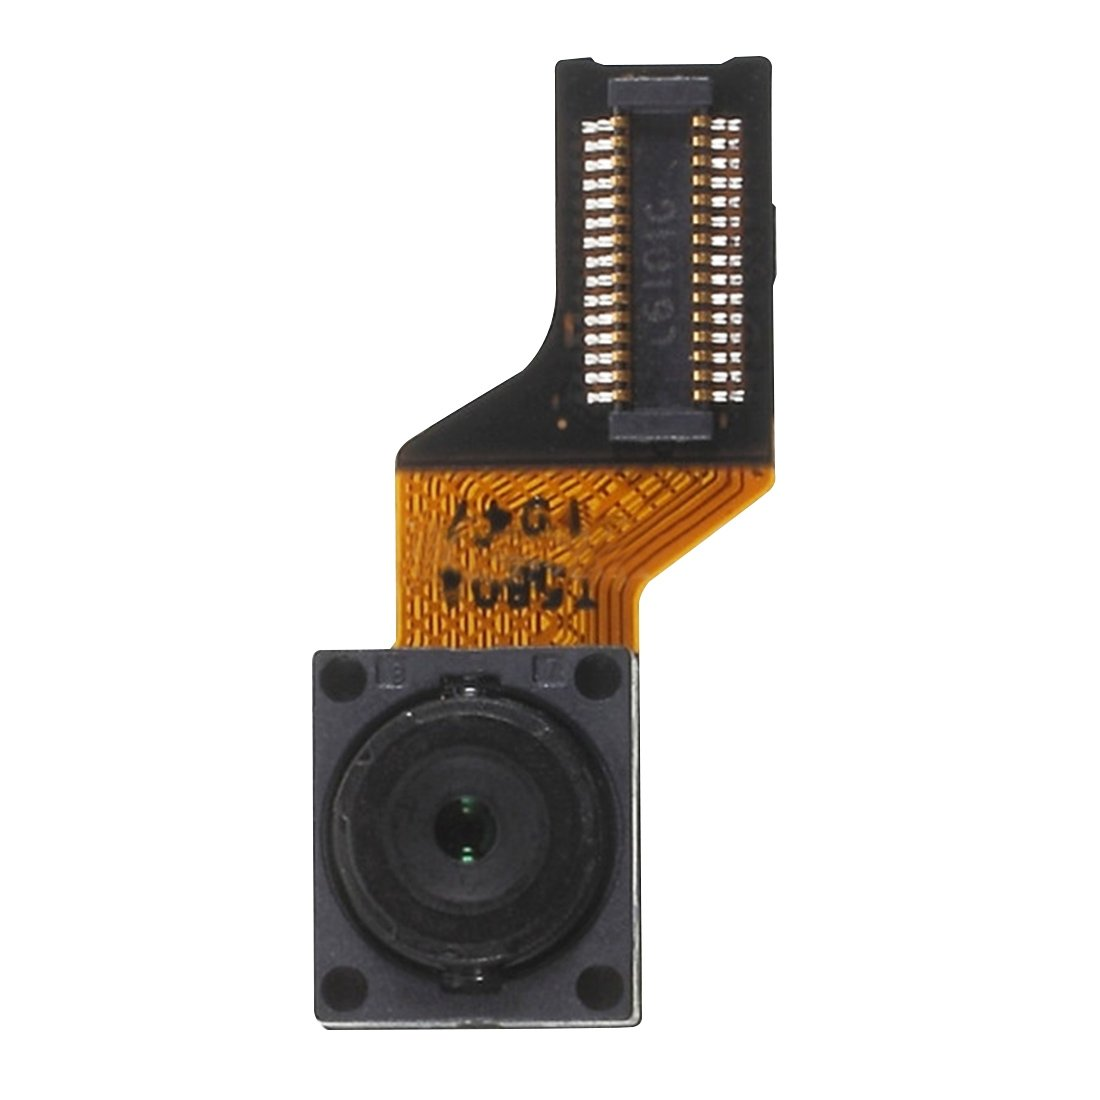 KANEED Camera Series Replacement Parts, Front Facing Camera Module for LG G5 / H850 / H820 / H830 / H831 / H840 / RS988 / US992 / LS992